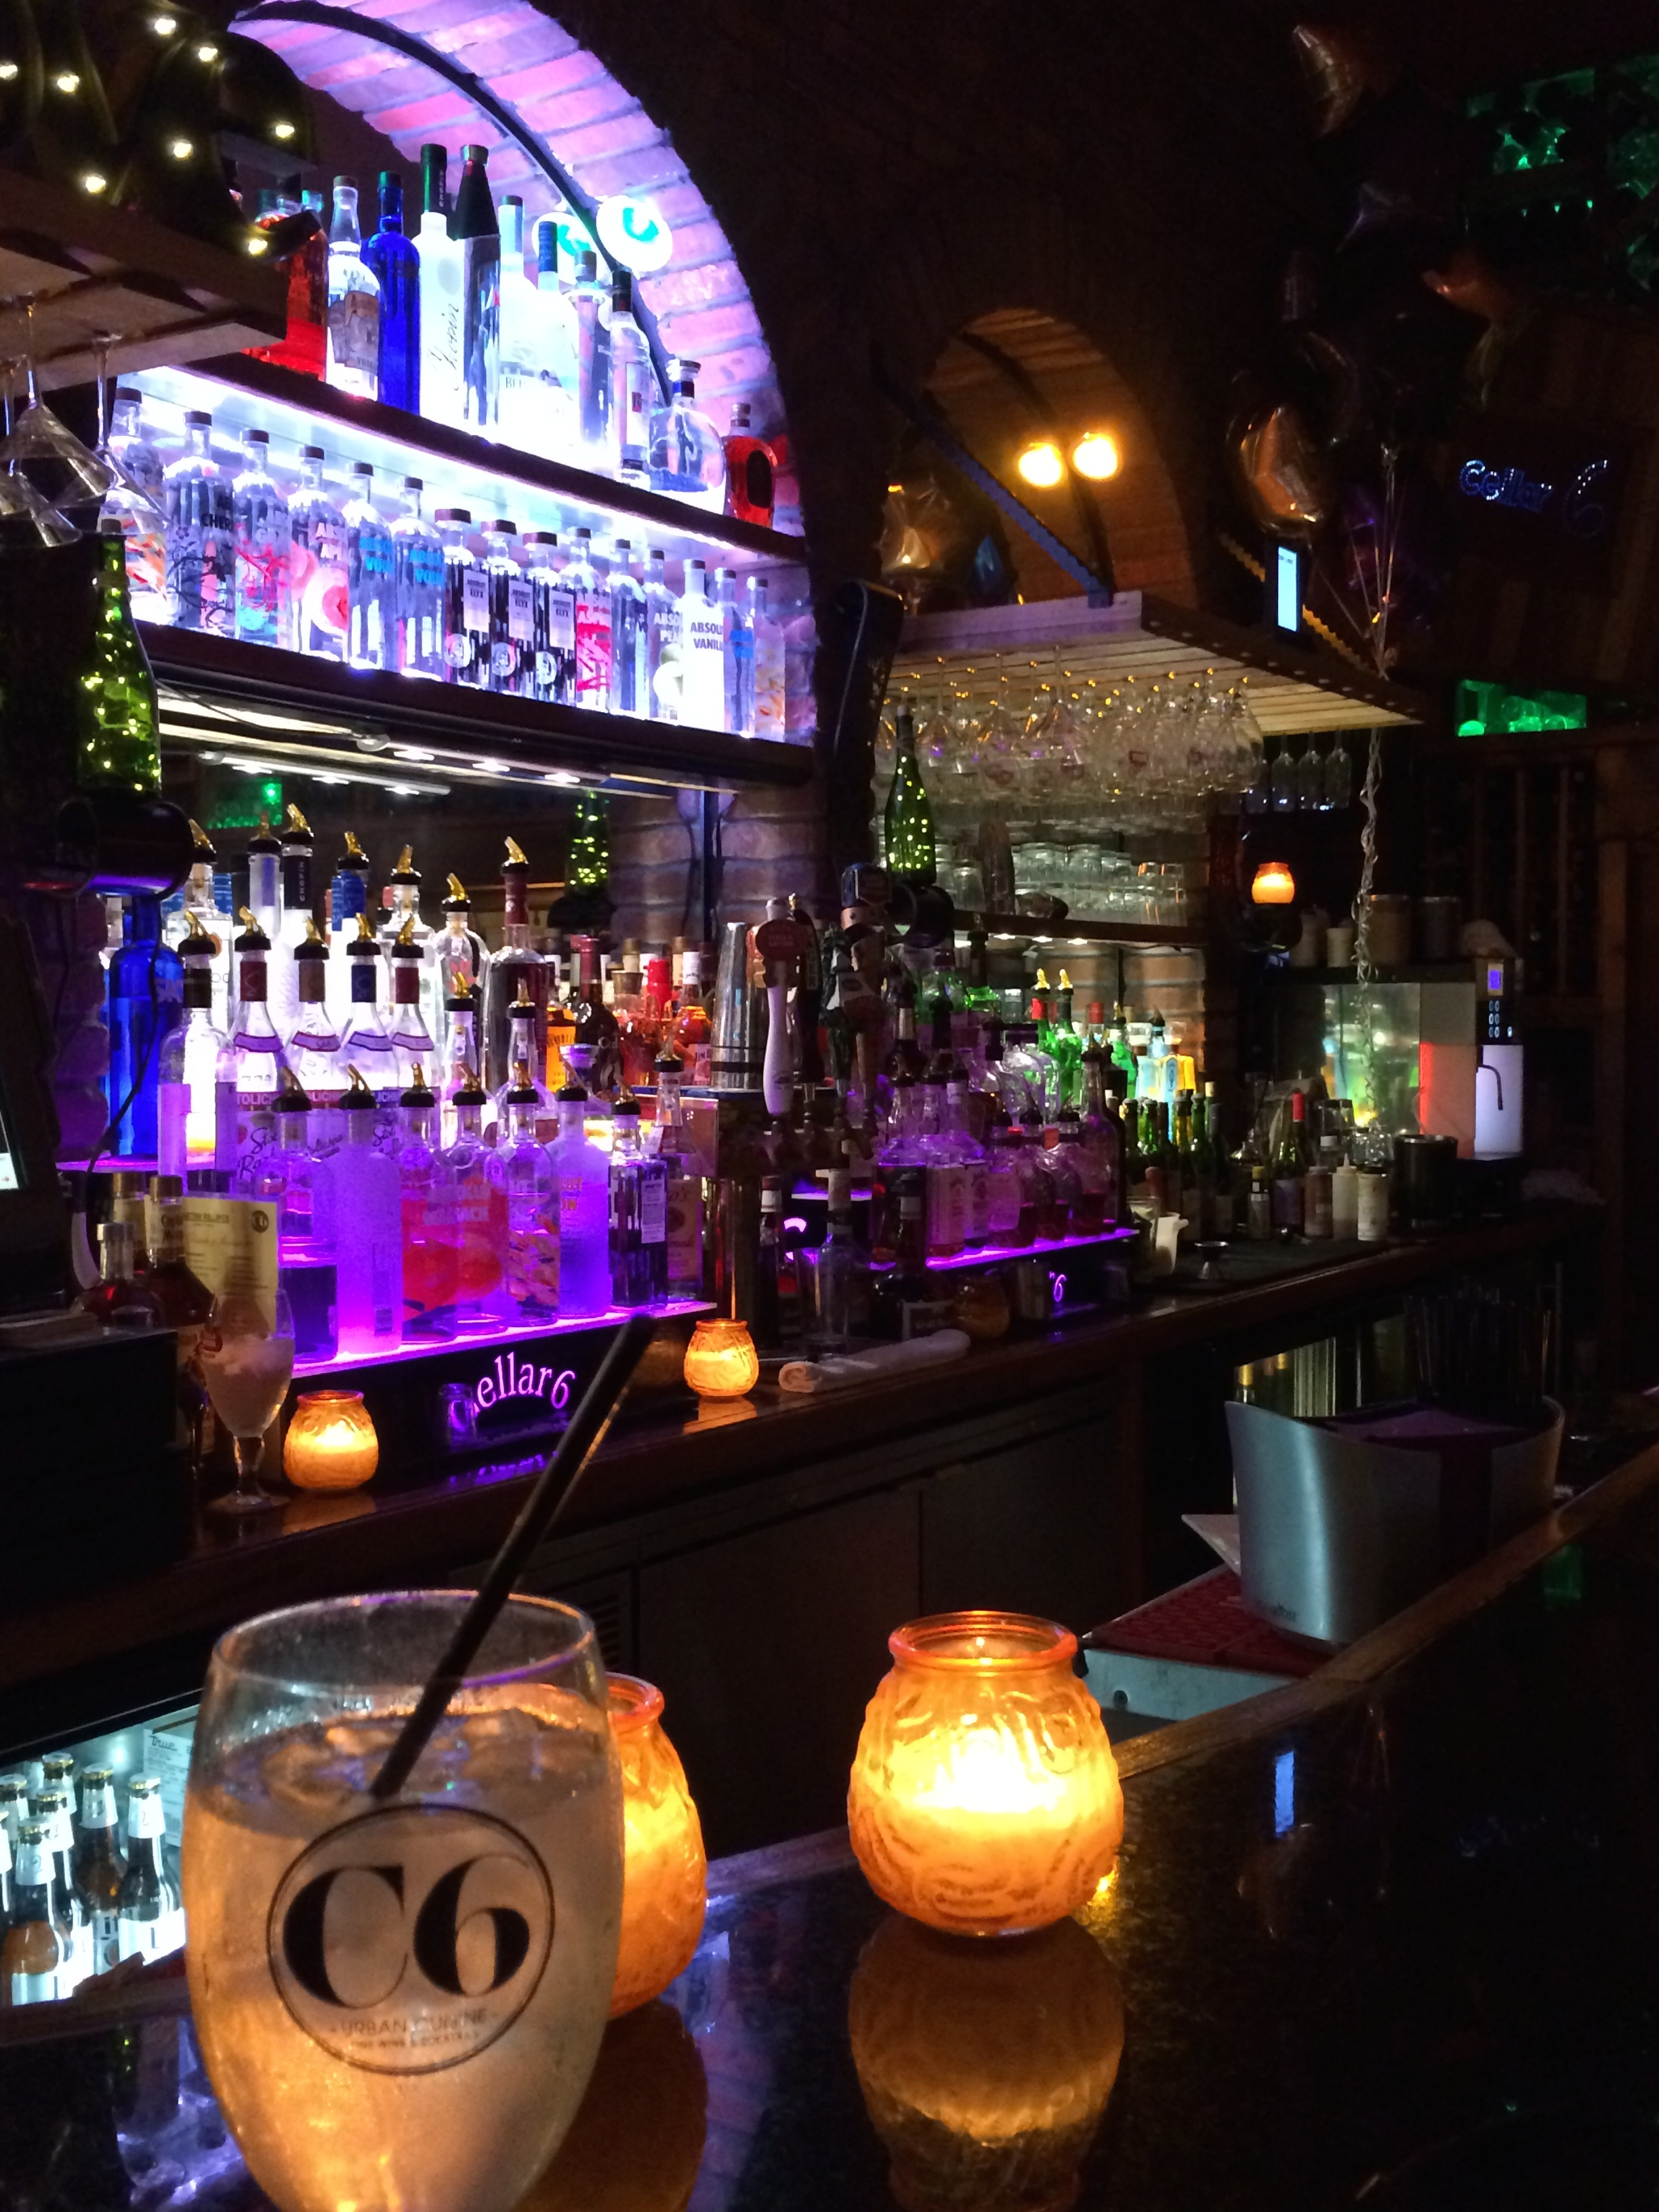 Sitting At The Bar Cellar 6 St Augustine Fl Oh The Places We